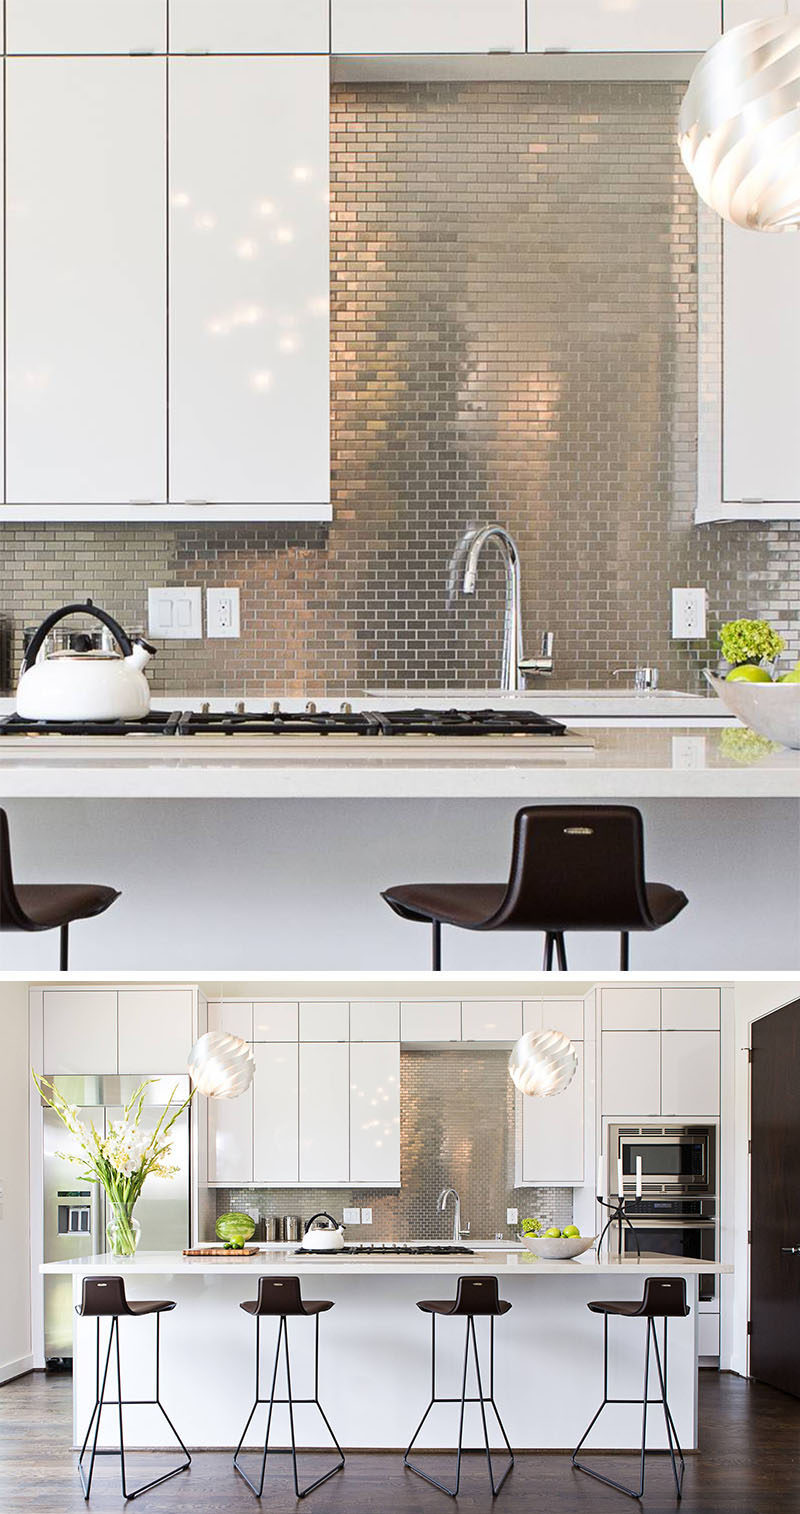 Kitchen Design Idea - Stainless Steel Backsplash // Small stainless steel tiles have been arranged in a brick-like pattern to contrast the white cabinetry and to help brighten the kitchen.